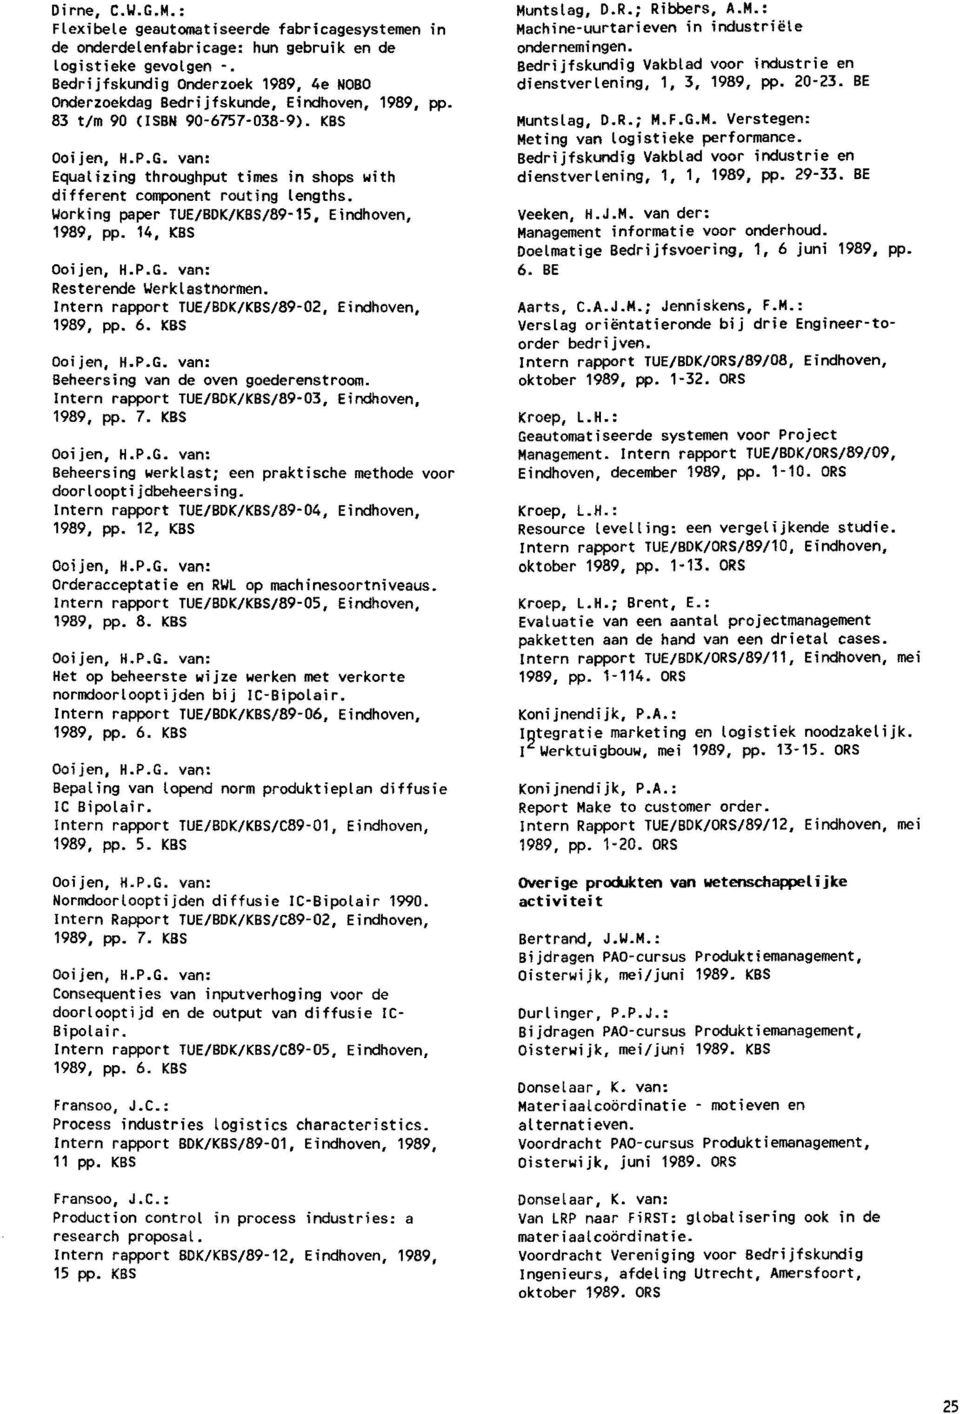 van: Equalizing throughput times in shops with different component routing lengths. Working paper TUE/BDK/KBS/89-15, Eindhoven, 1989, pp. 14, KBS Ooijen, H.P.C. van: Resterende Werklastnormen.